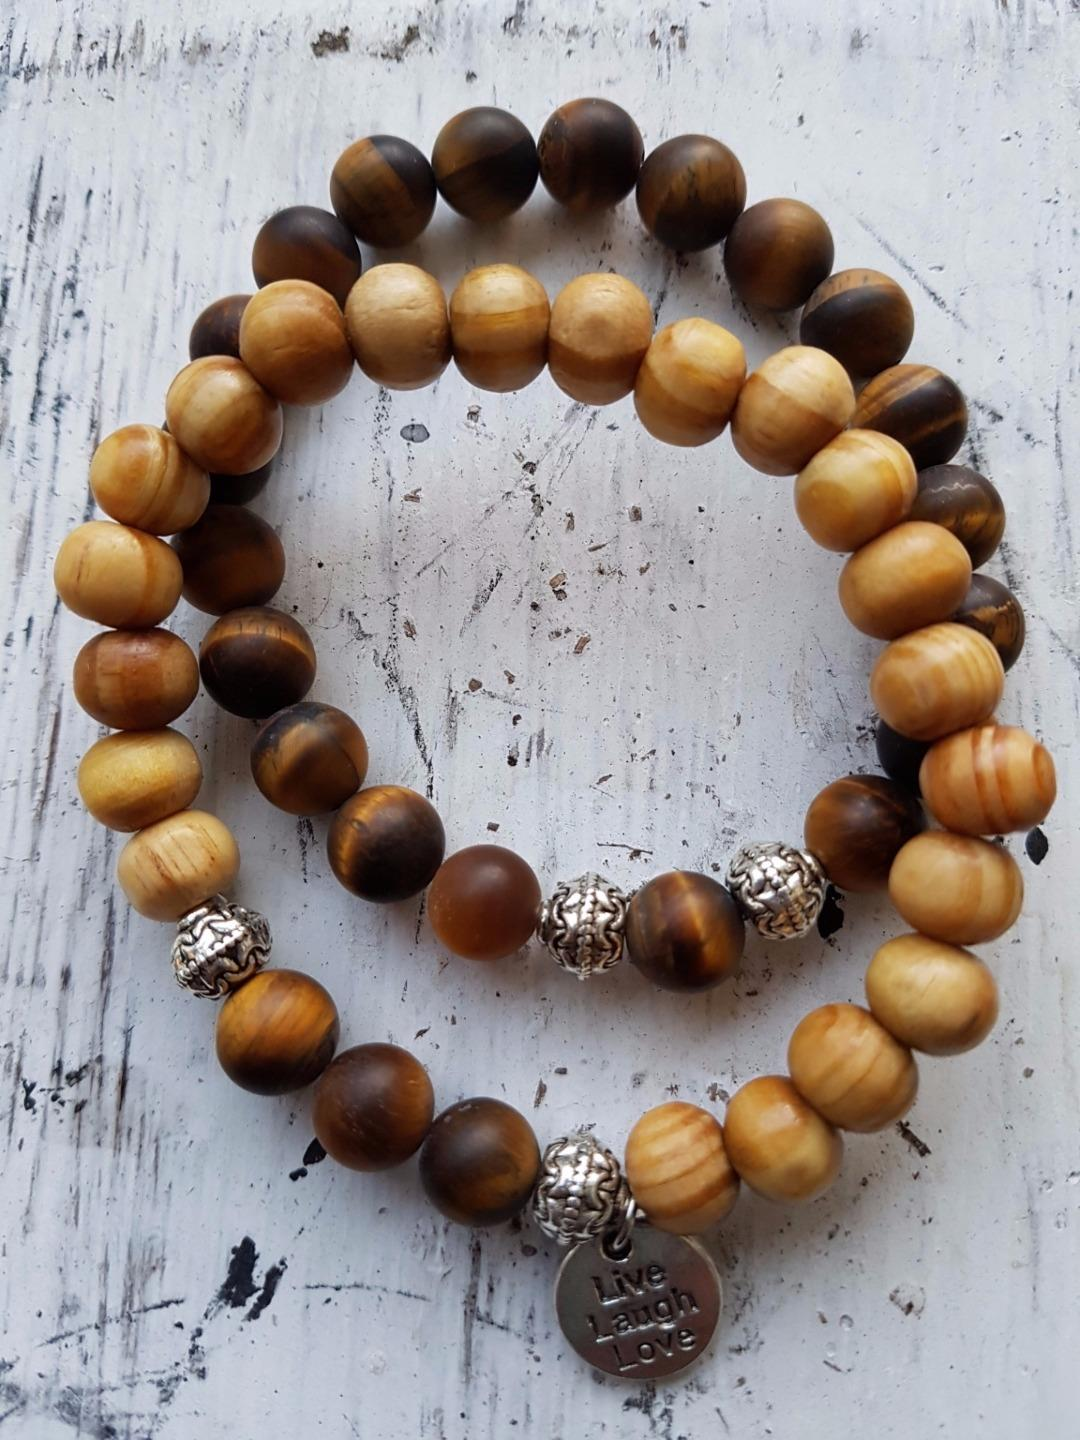 ST28-tigerseye-amp-wood-essientiial-oil-diffuser-bracelet-pair-3-sizes